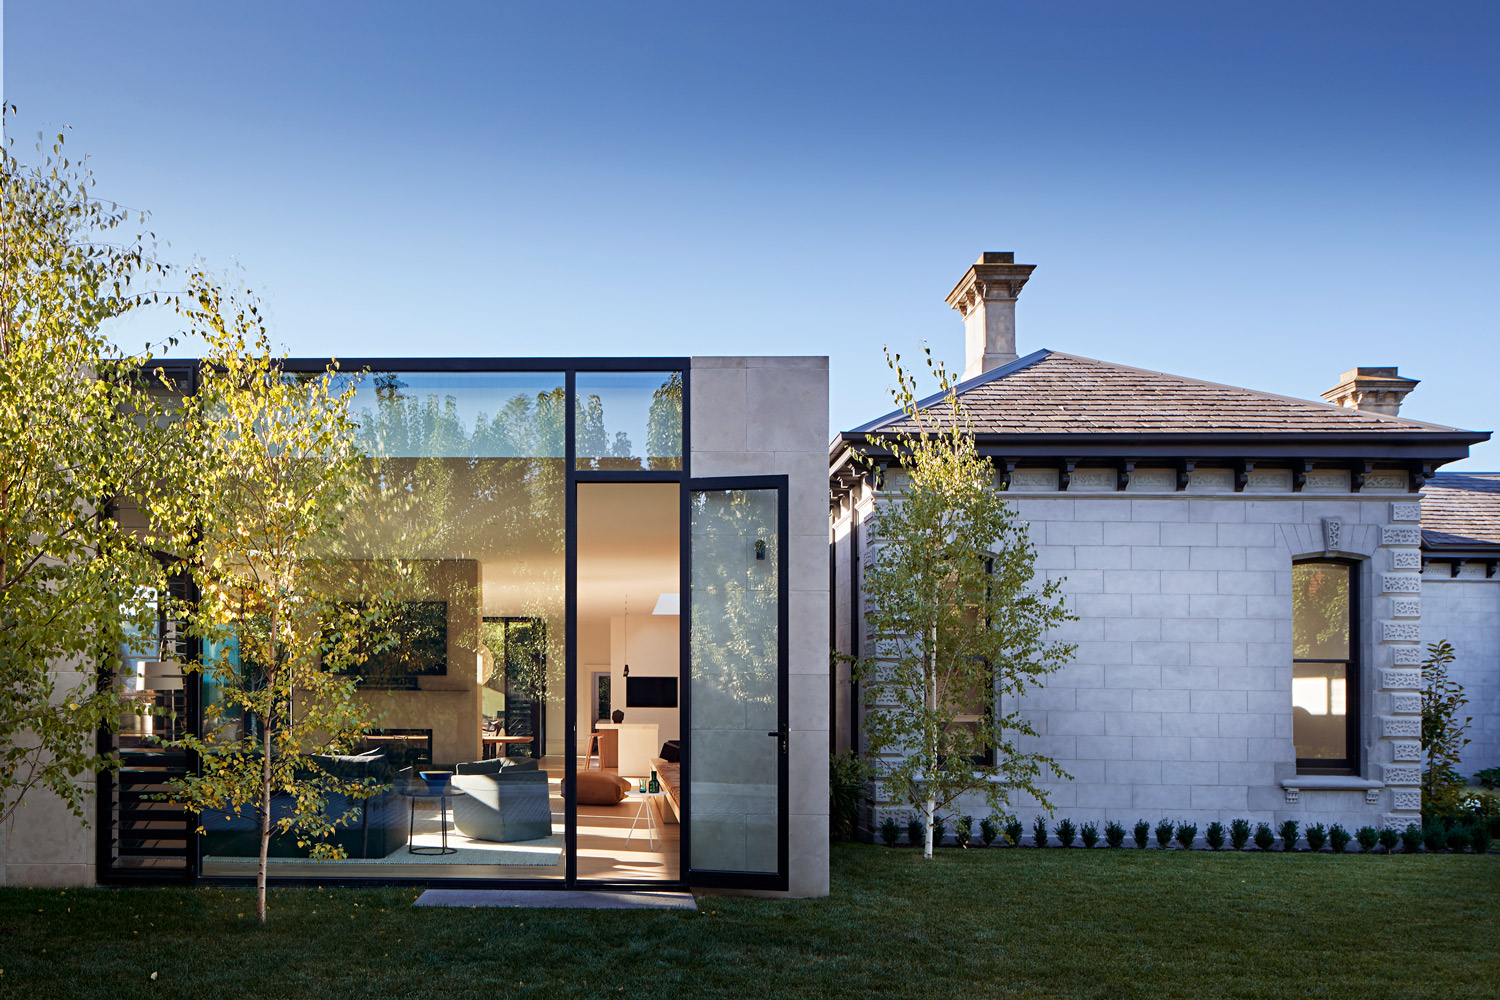 The Pavilion House By Robson Rak Past Present In Architectural Form